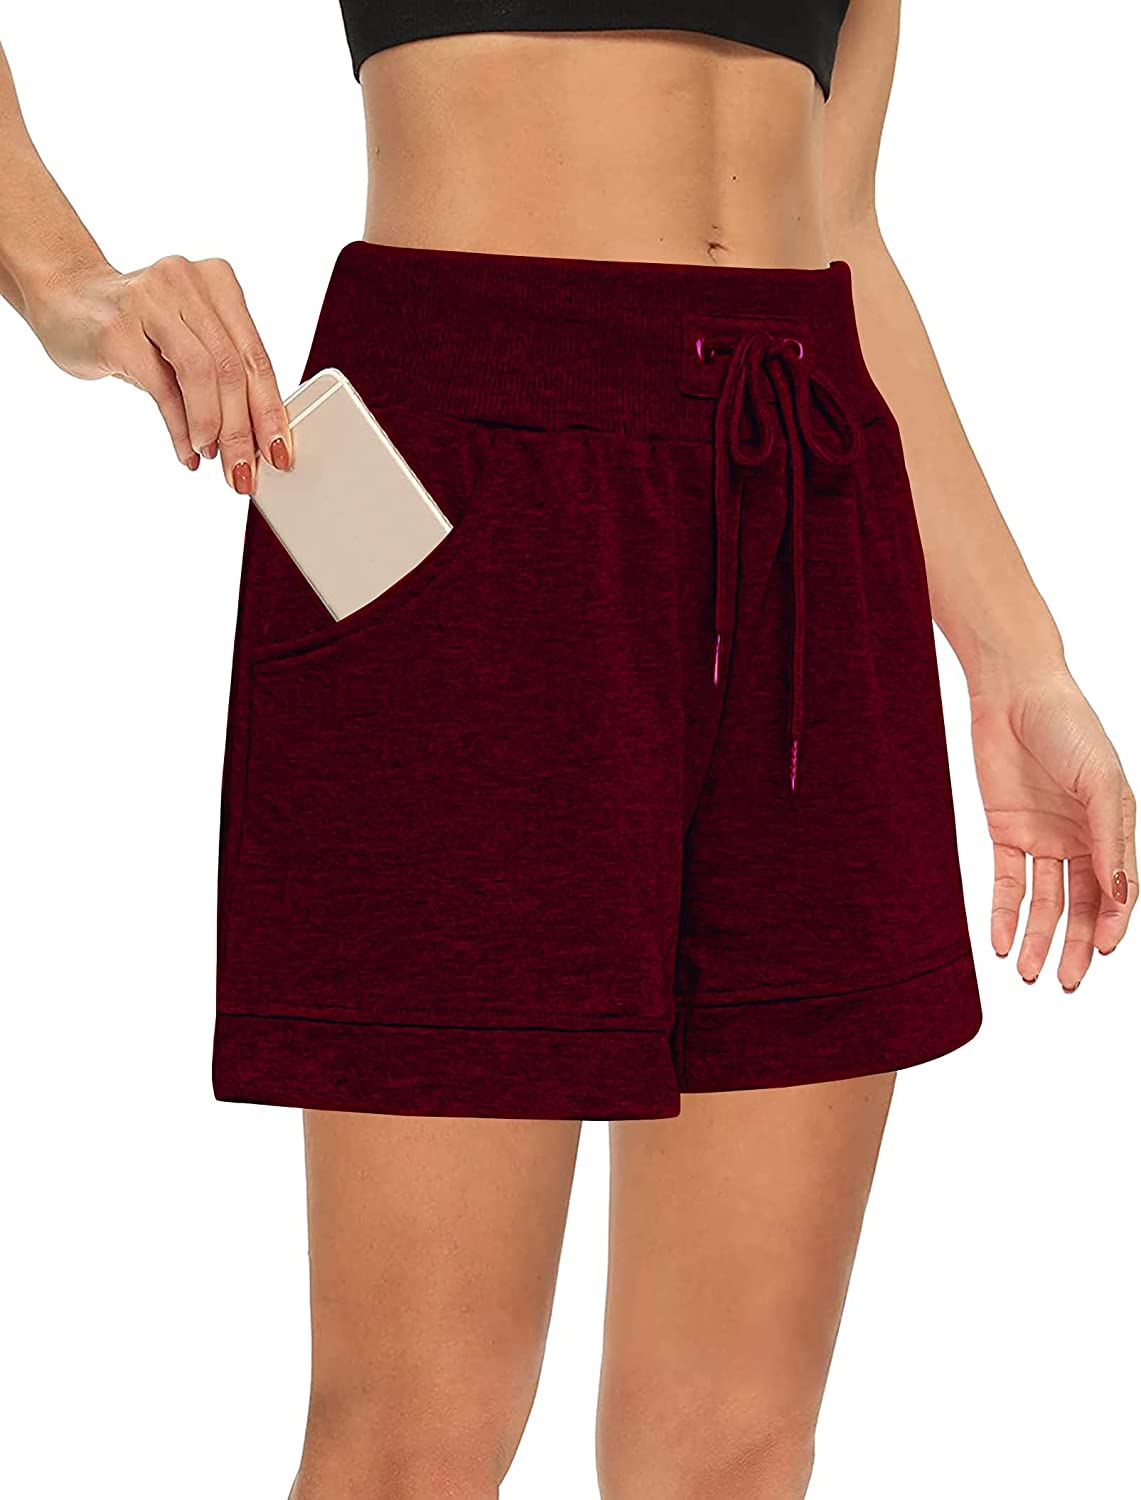 Chriselda Womens Athletic Shorts Drawstring Elastic Waist Workout Casual Comfy Sweat Shorts for Summer with Pockets